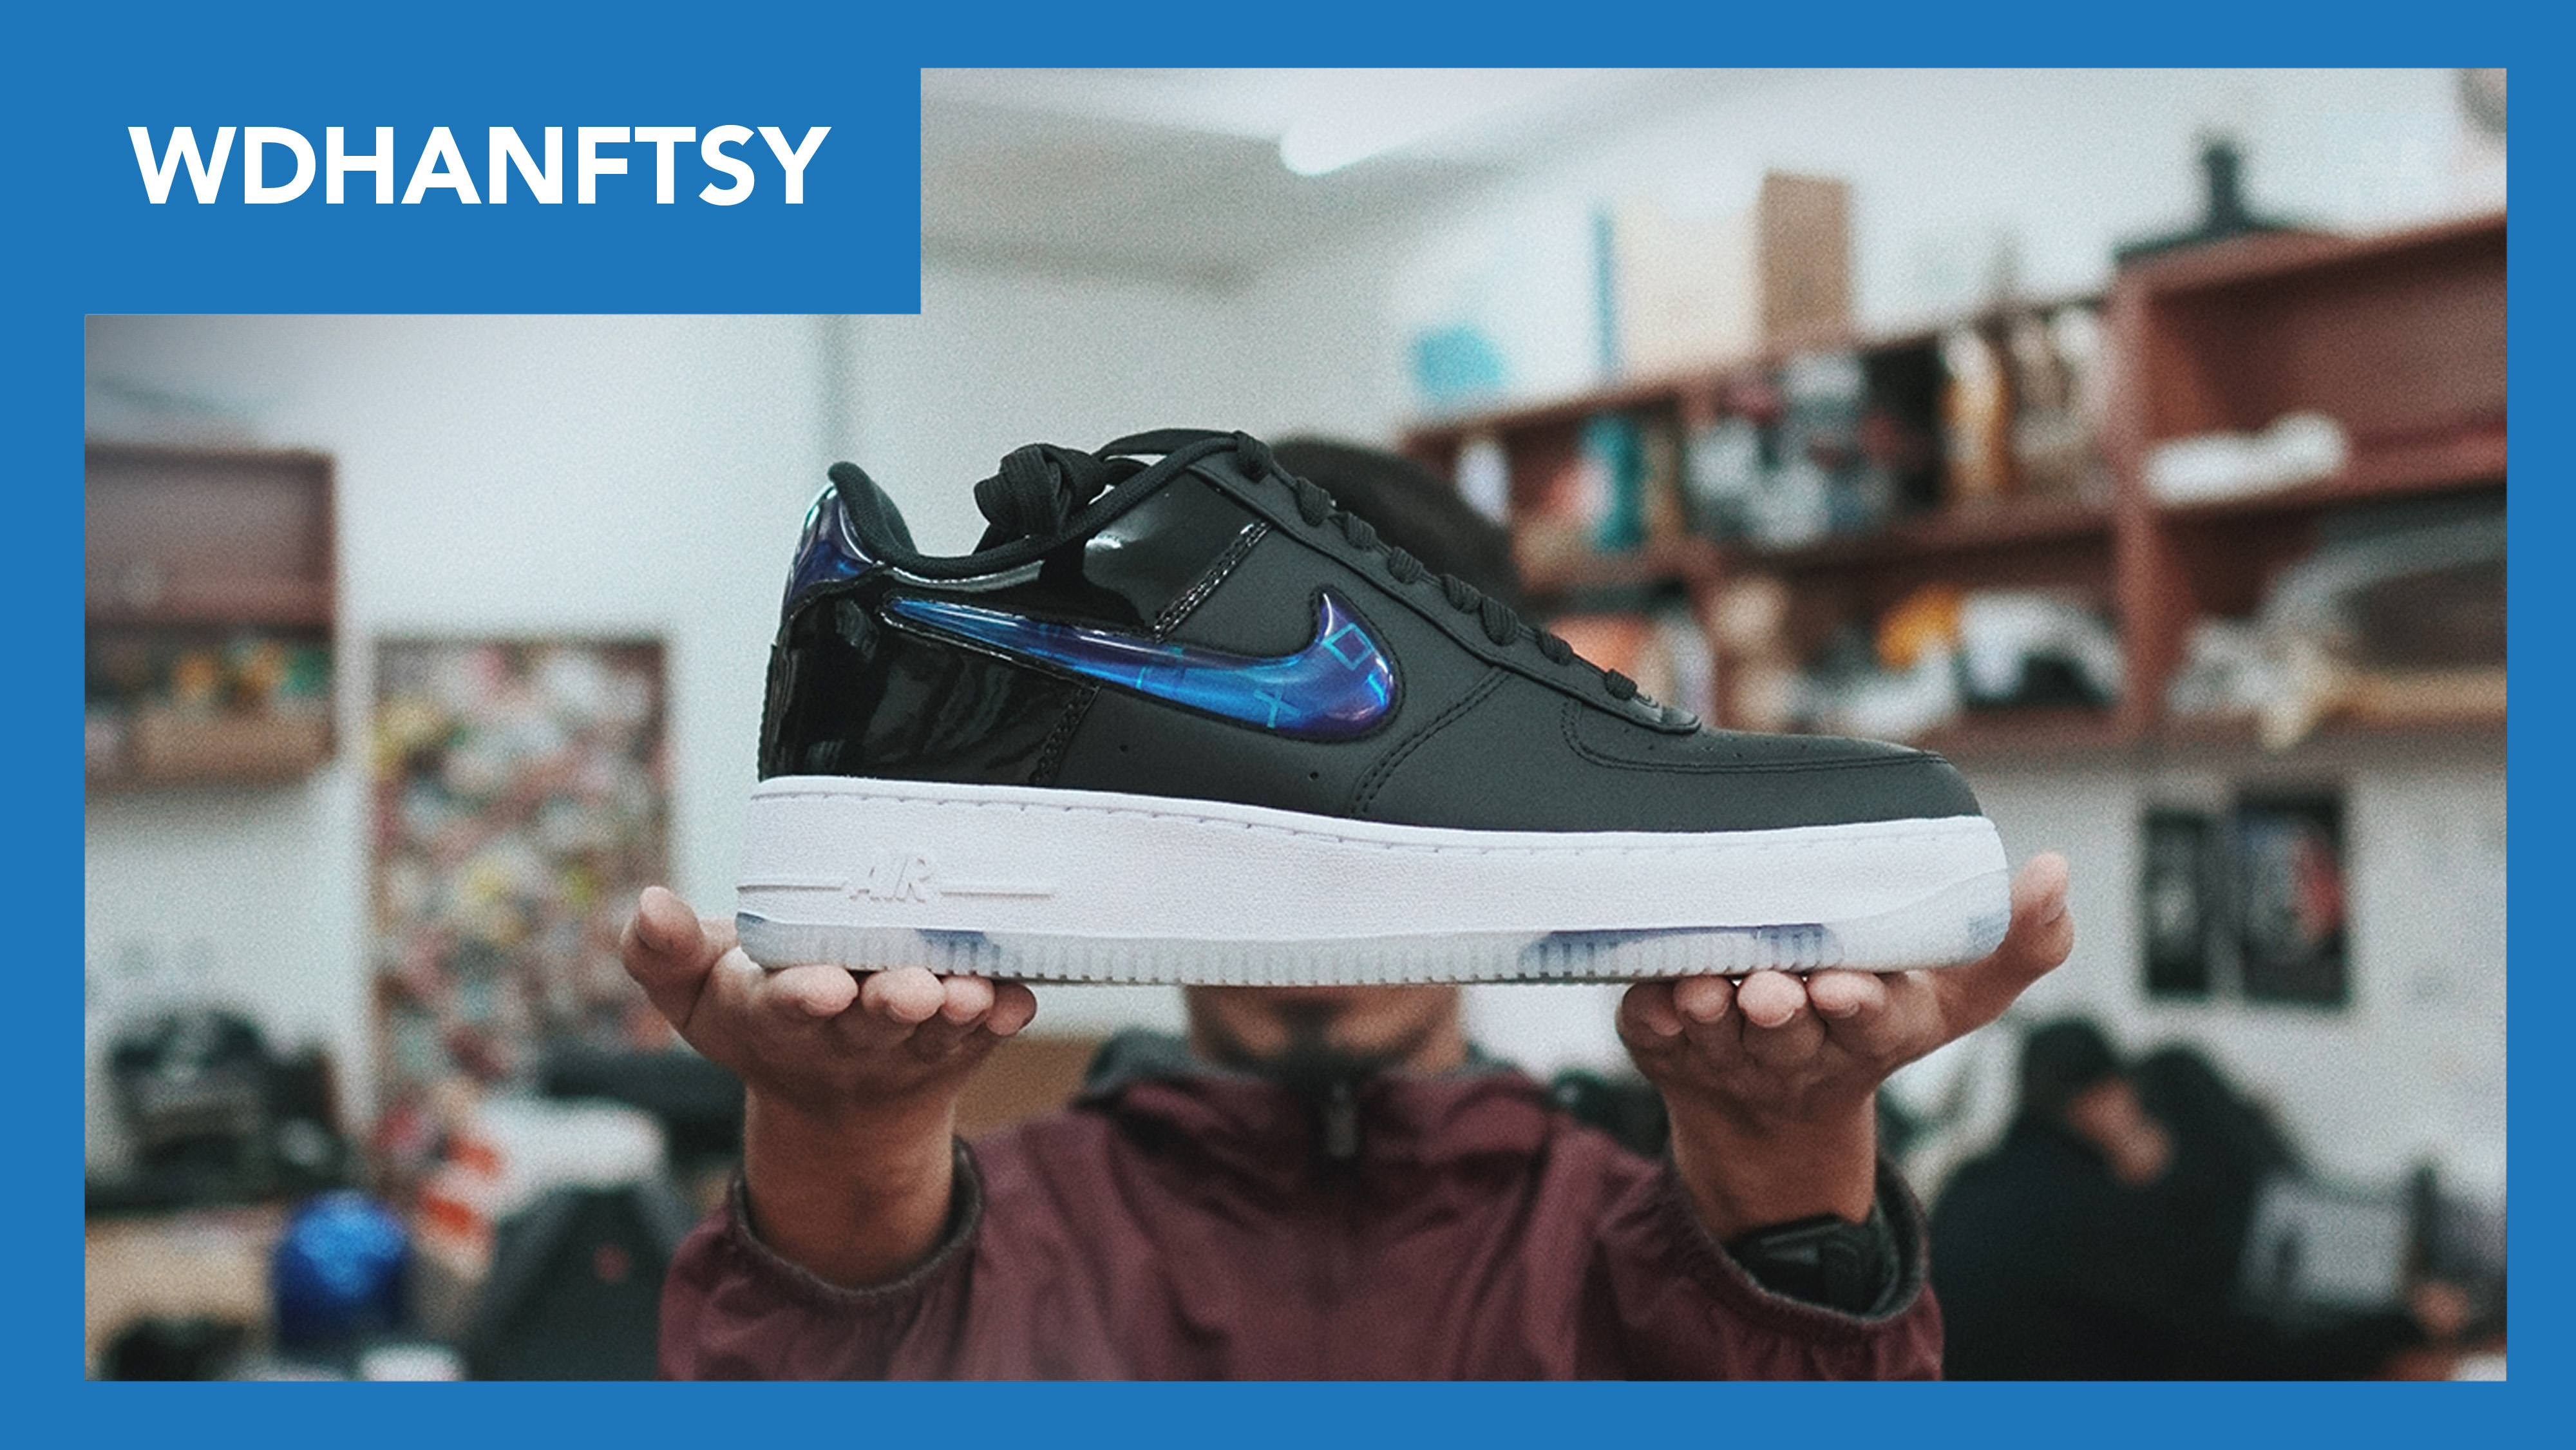 46a2169ec337 WDHANFTSY  Nike Air Force 1  Playstation  - Page 38 of 367 - MASSES